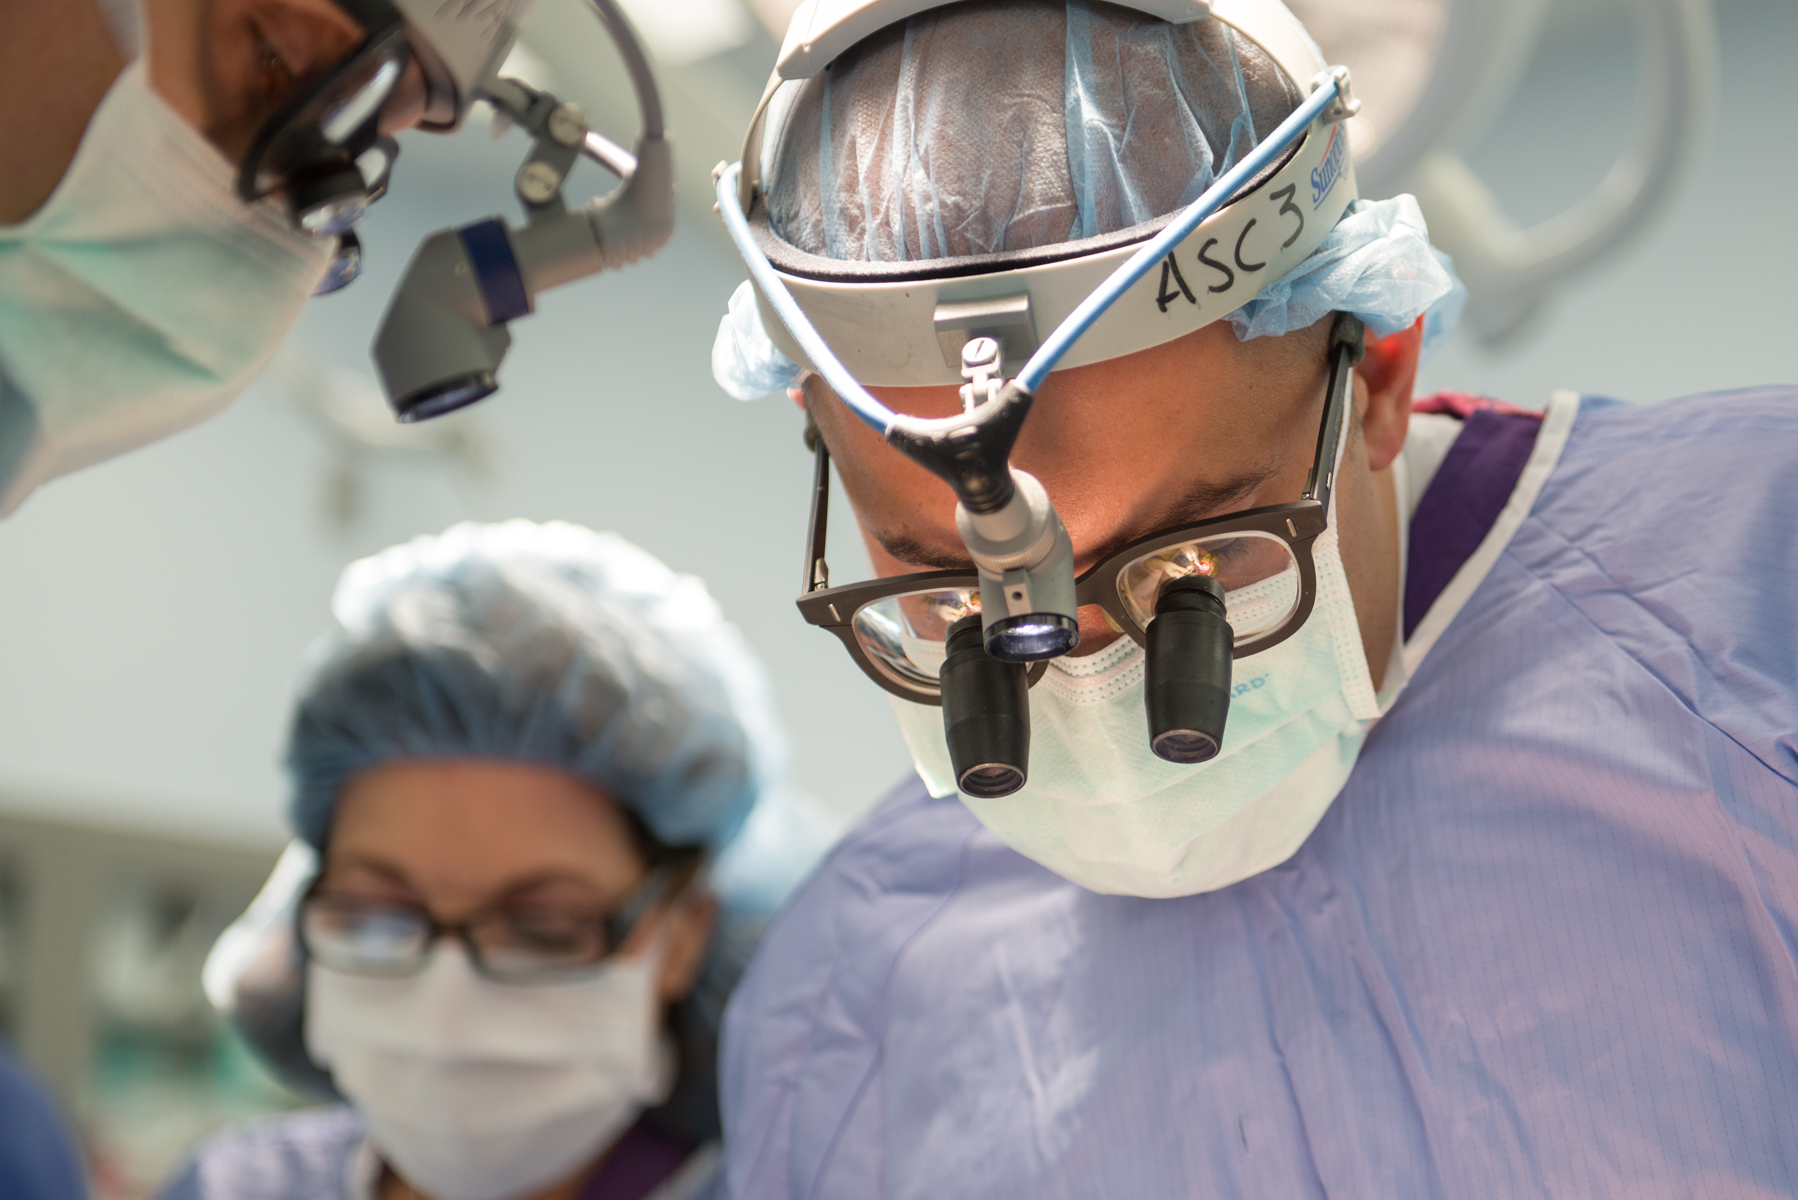 Medical personnel perform a surgery